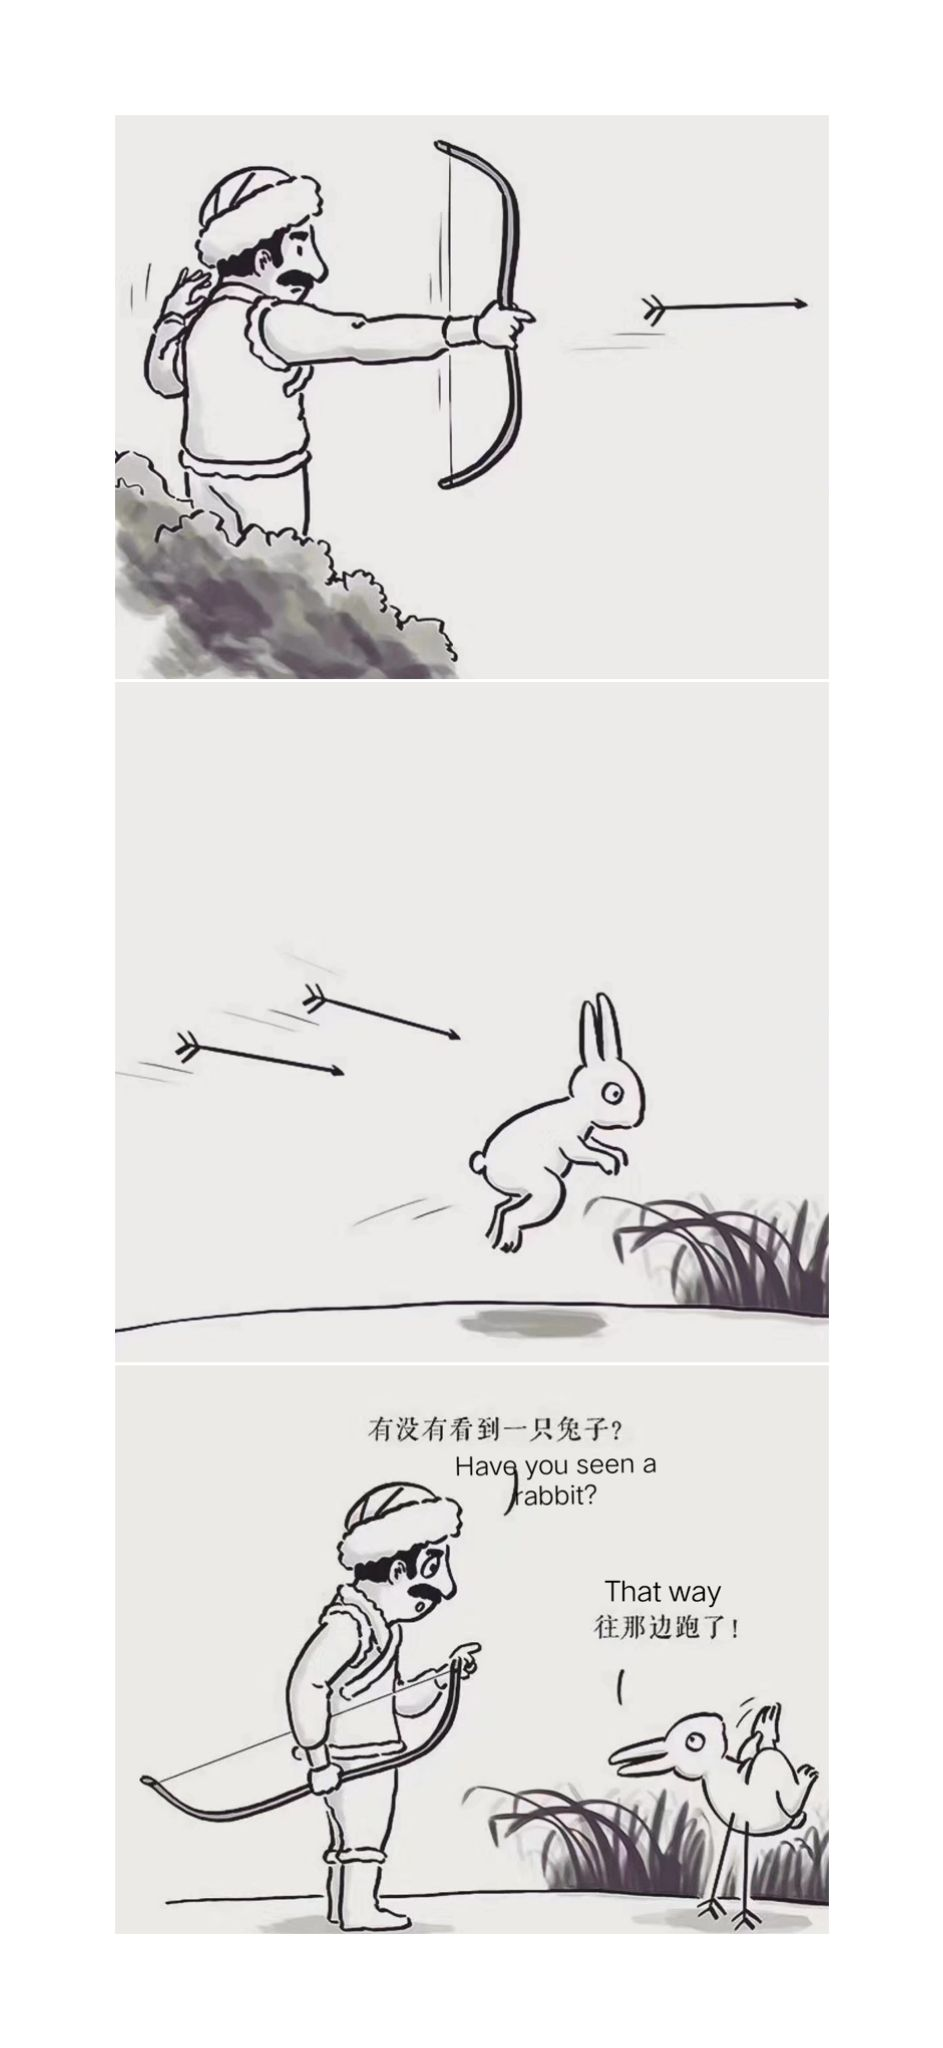 Have you seen a rabbit?